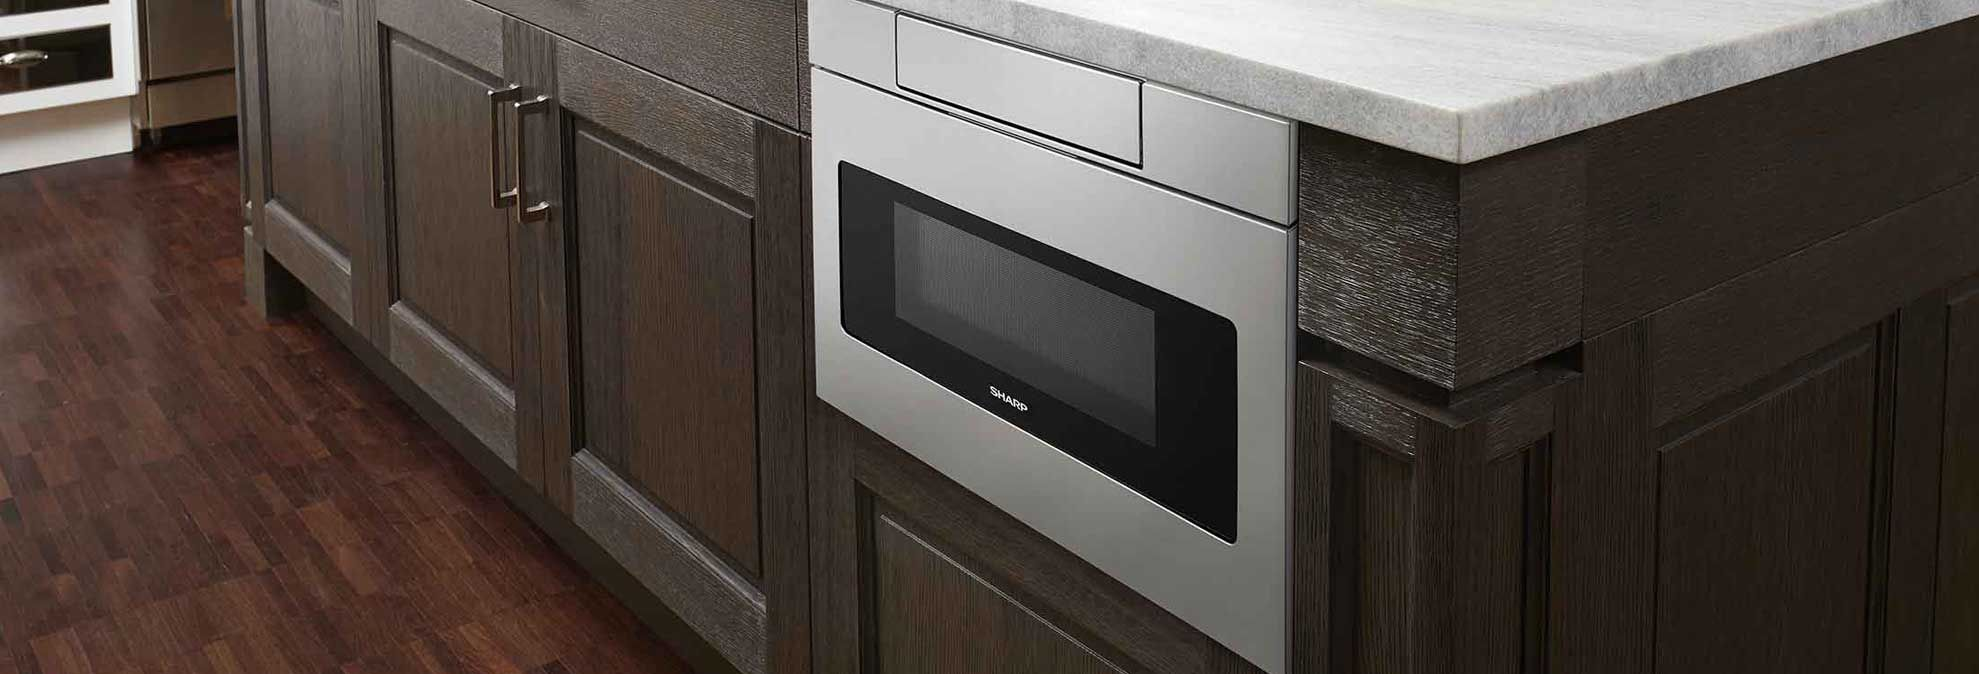 Appliance Drawers That Blend Into Your Kitchen